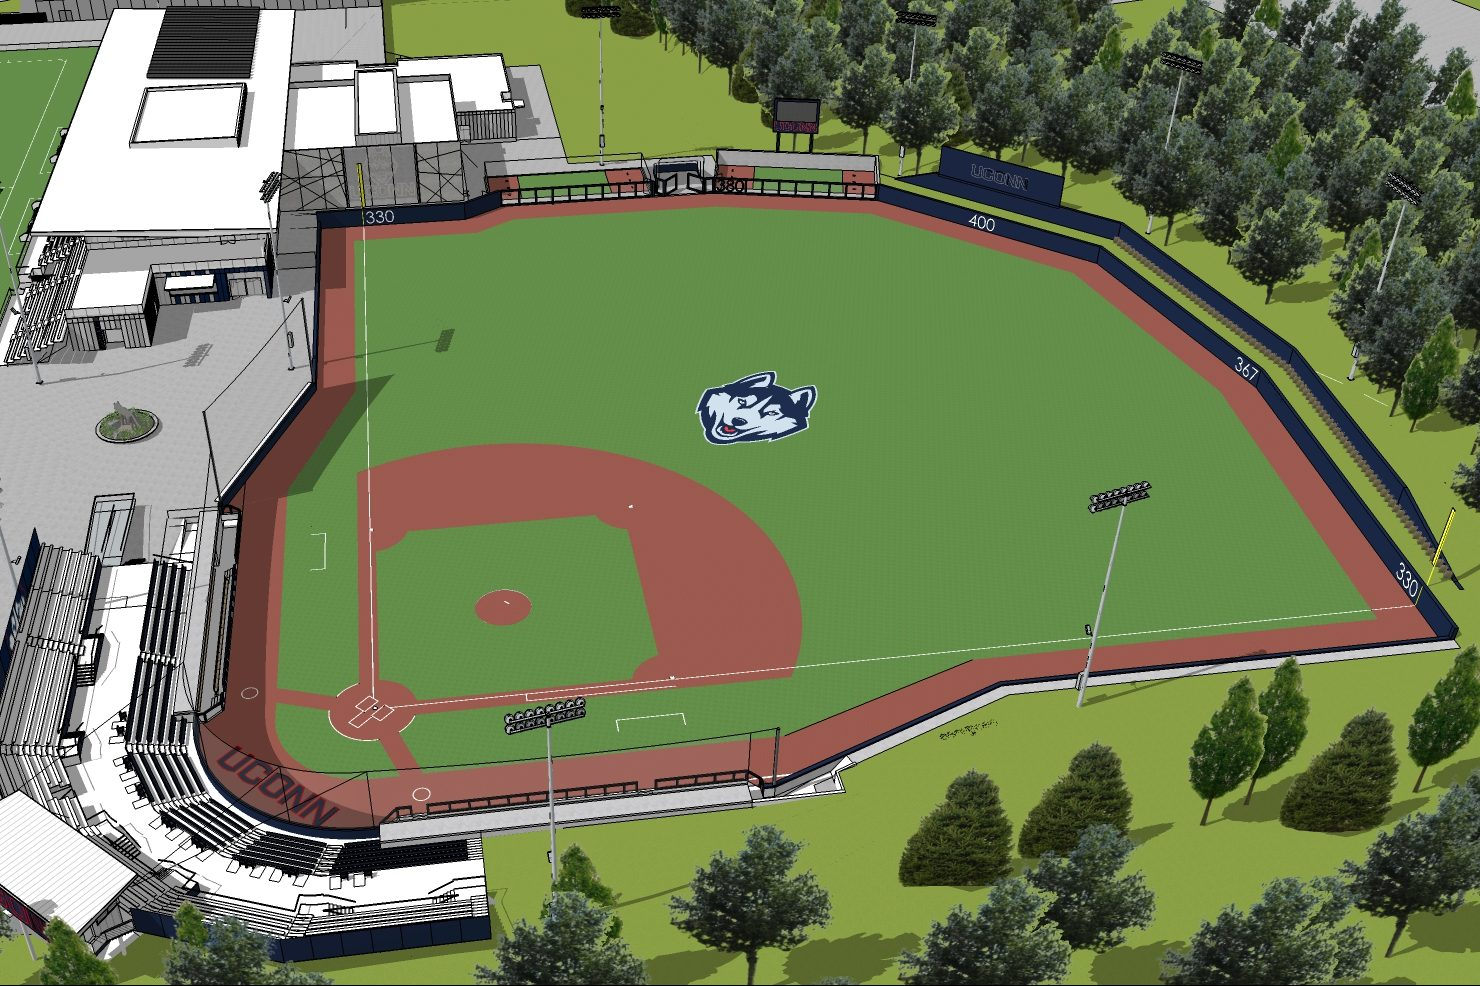 A design of the Elliot Ballpark, the new 1,500-seat facility scheduled to open in the spring of 2020.